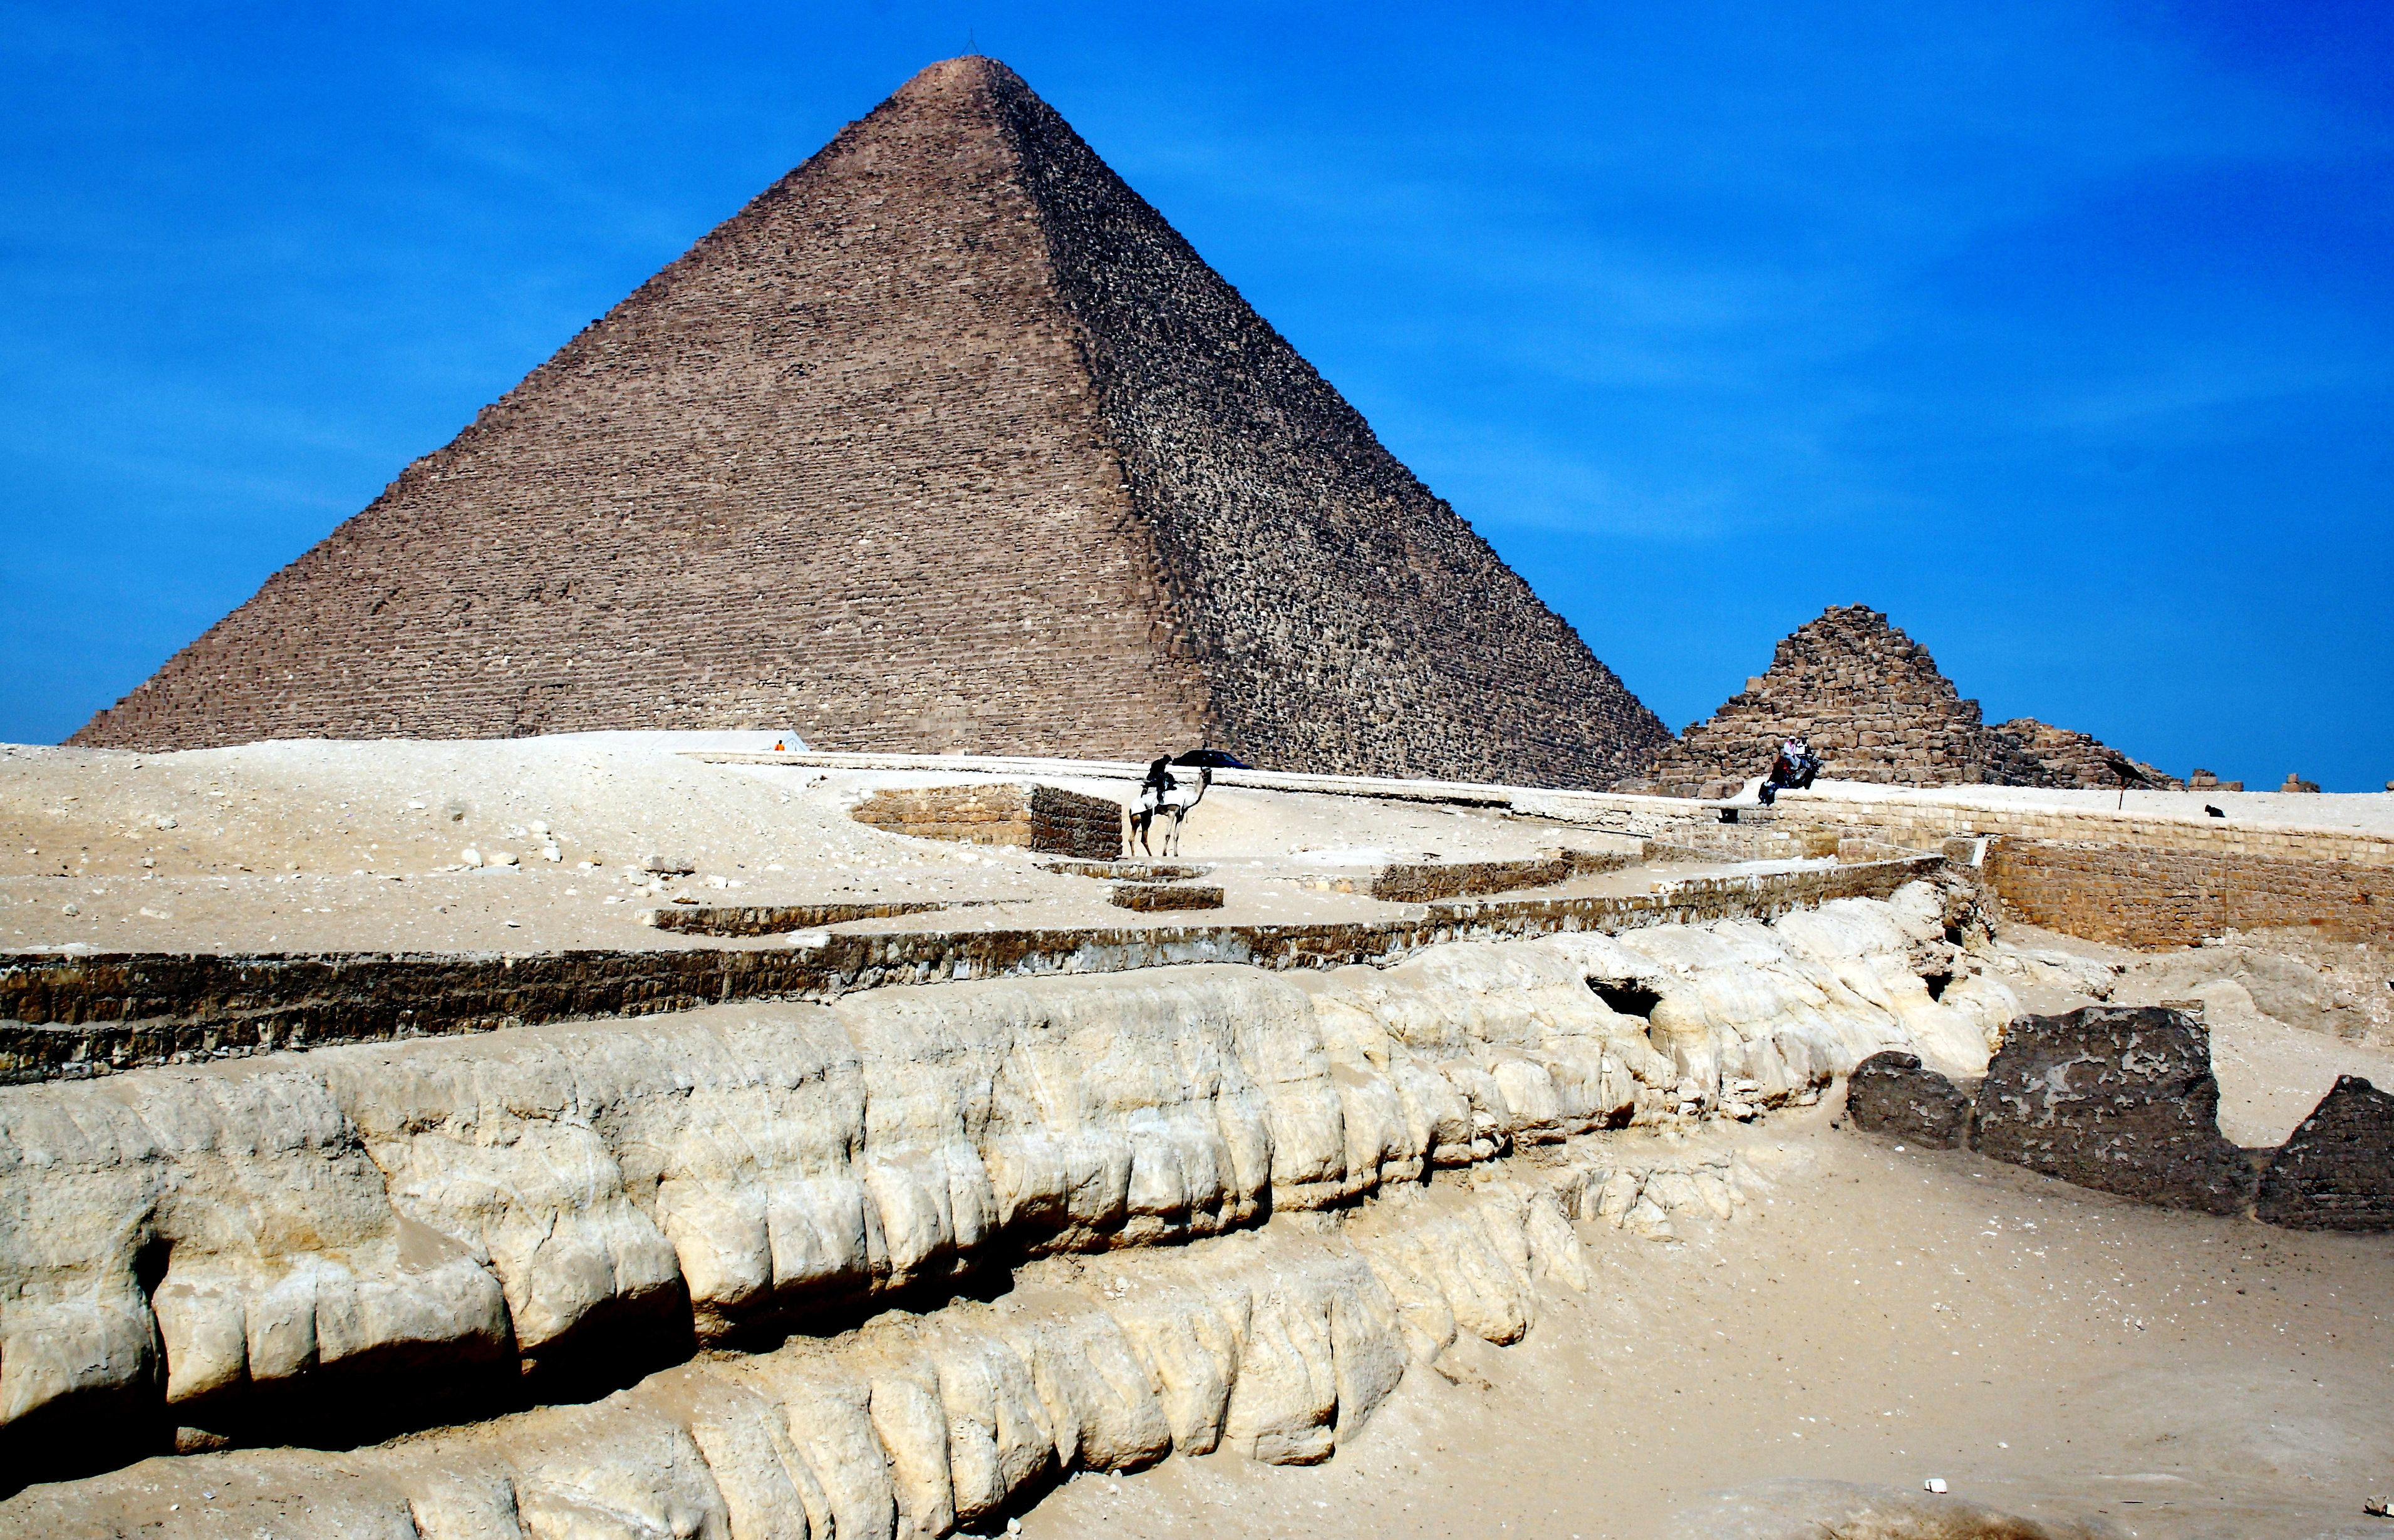 Pyramid of Cheops, El Giza, Egypt, 2560 BCE, limestone, 455' high (originally 481' high), photo by Hedwig Storch via Wikimedia Commons,  Creative Commons Attribution-Share Alike 3.0 Unported license.